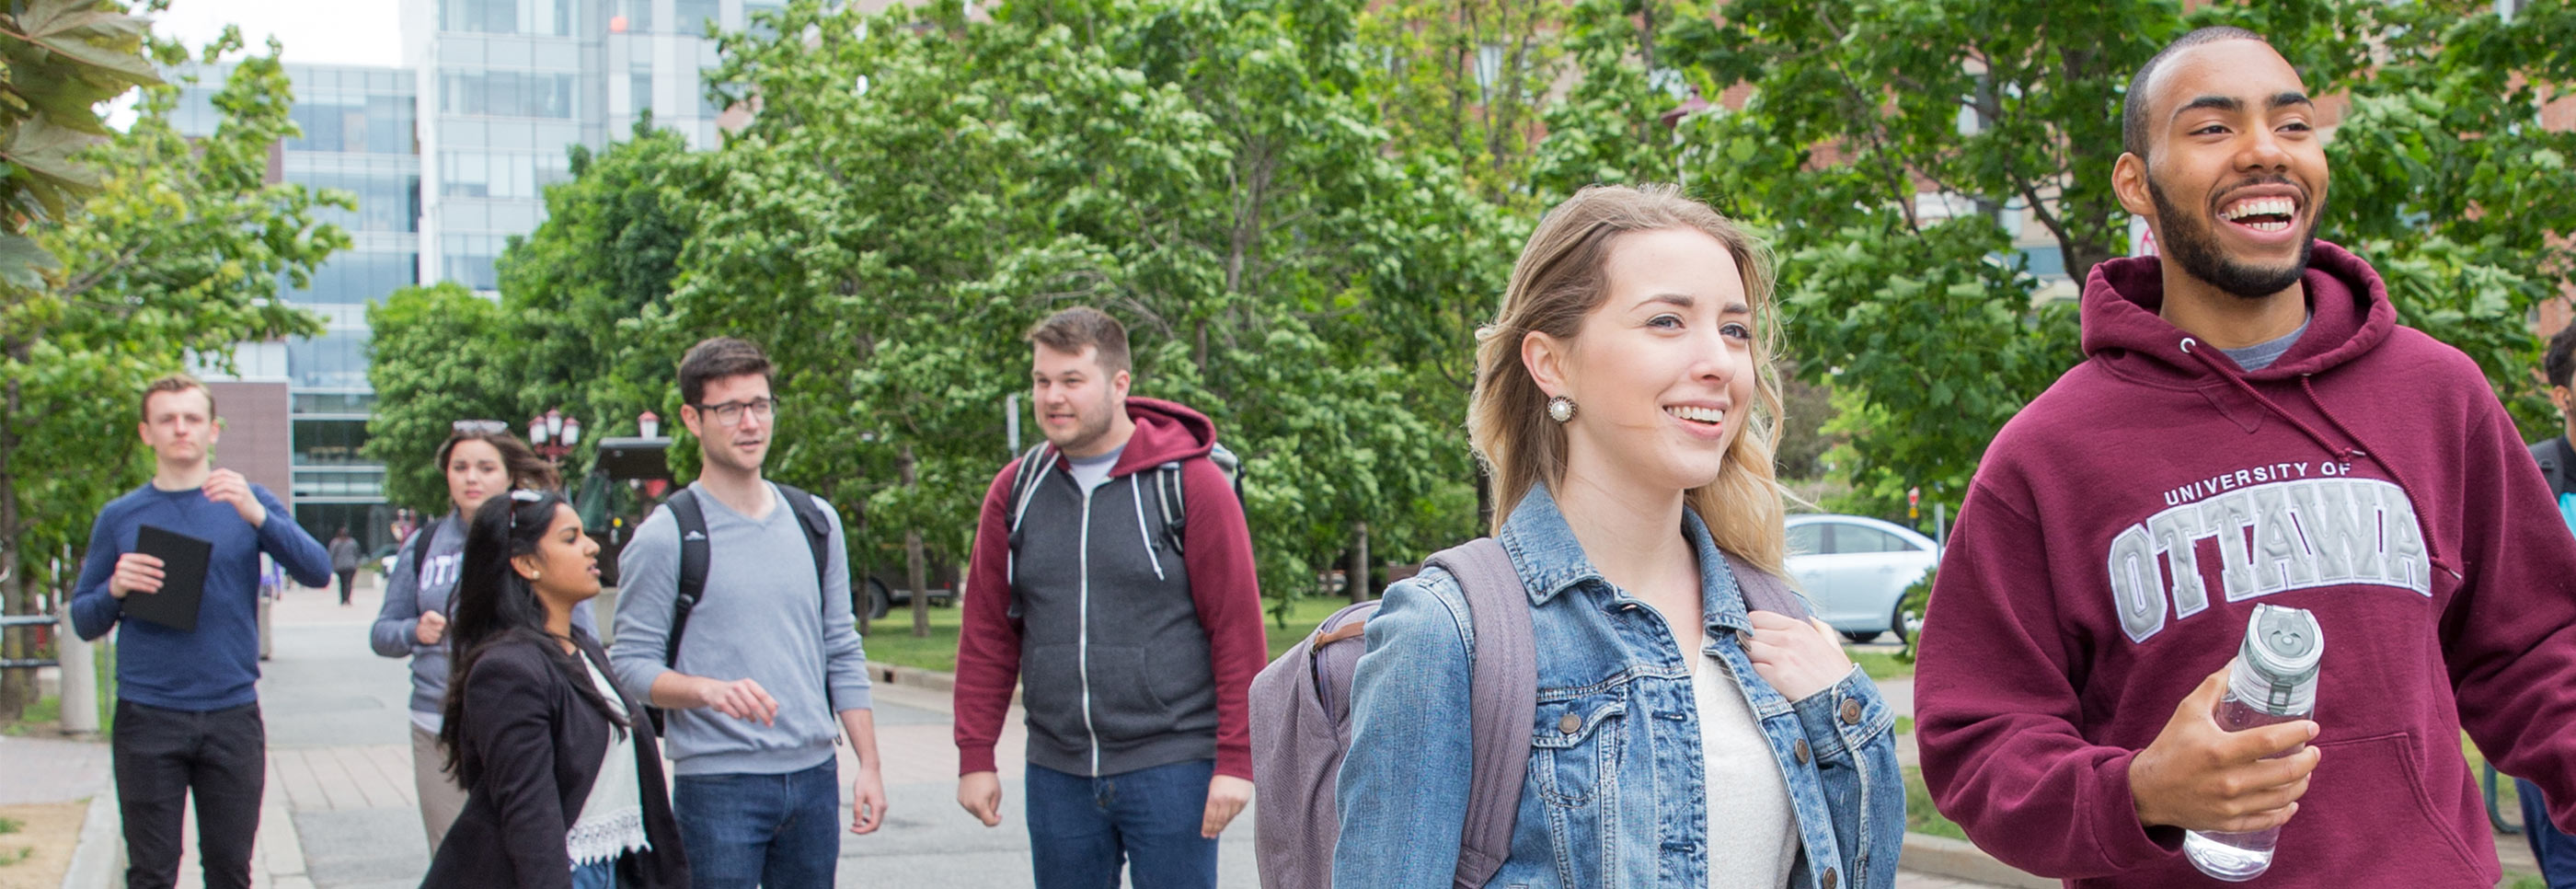 Seven students walking in the main pedestrian alley, smiling with FSS in the background